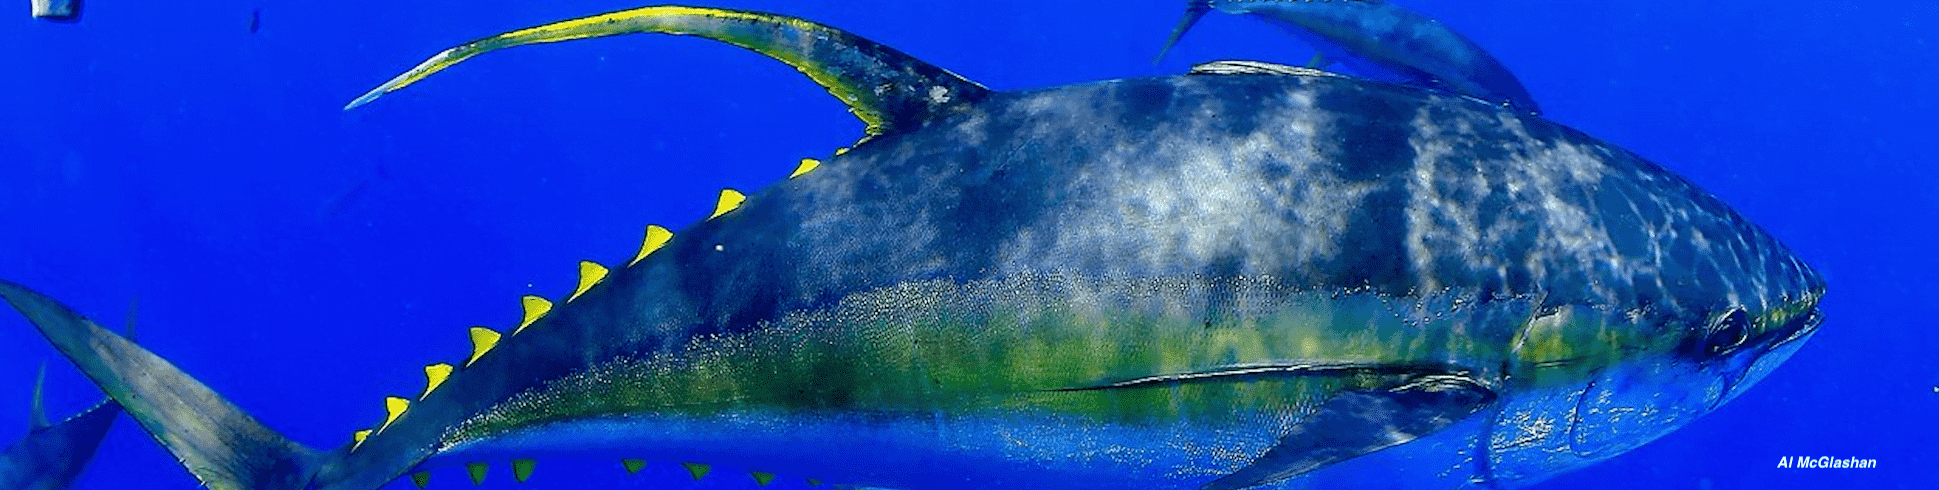 IOTC adopts resolution to rebuild yellowfin tuna stock, but NGOs question its effectiveness